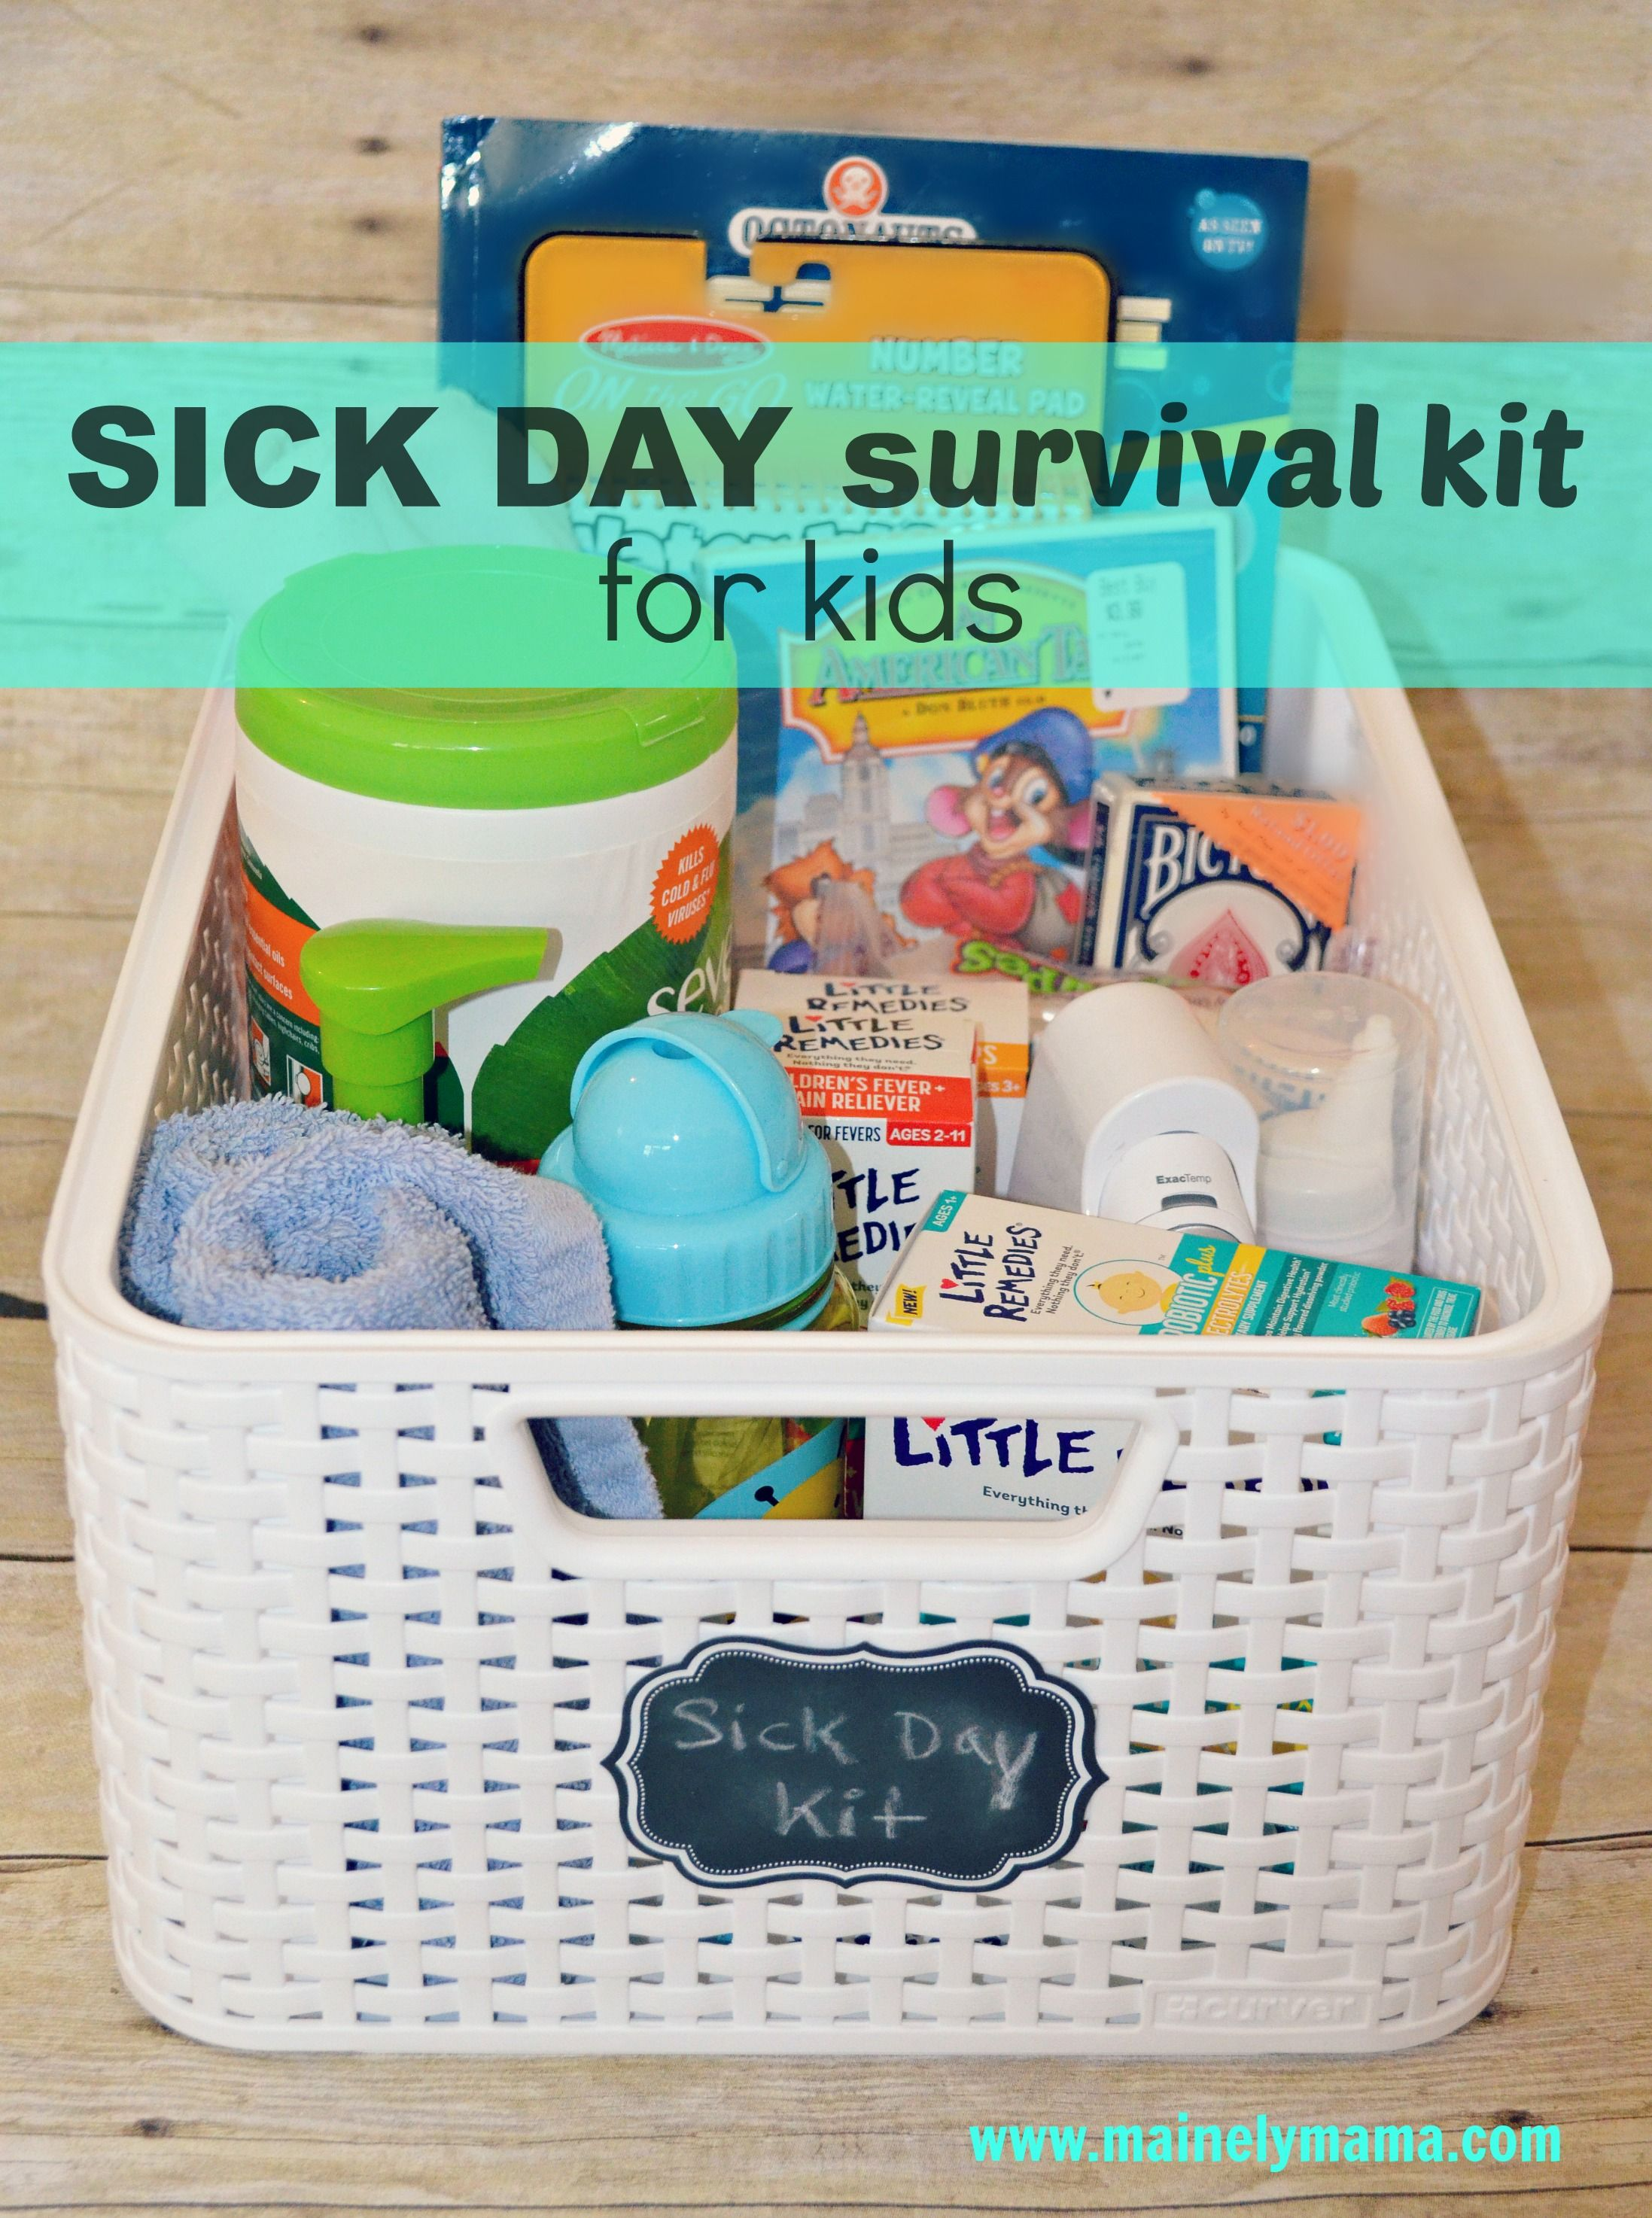 Be prepared with this sick day survival kit for kids ad